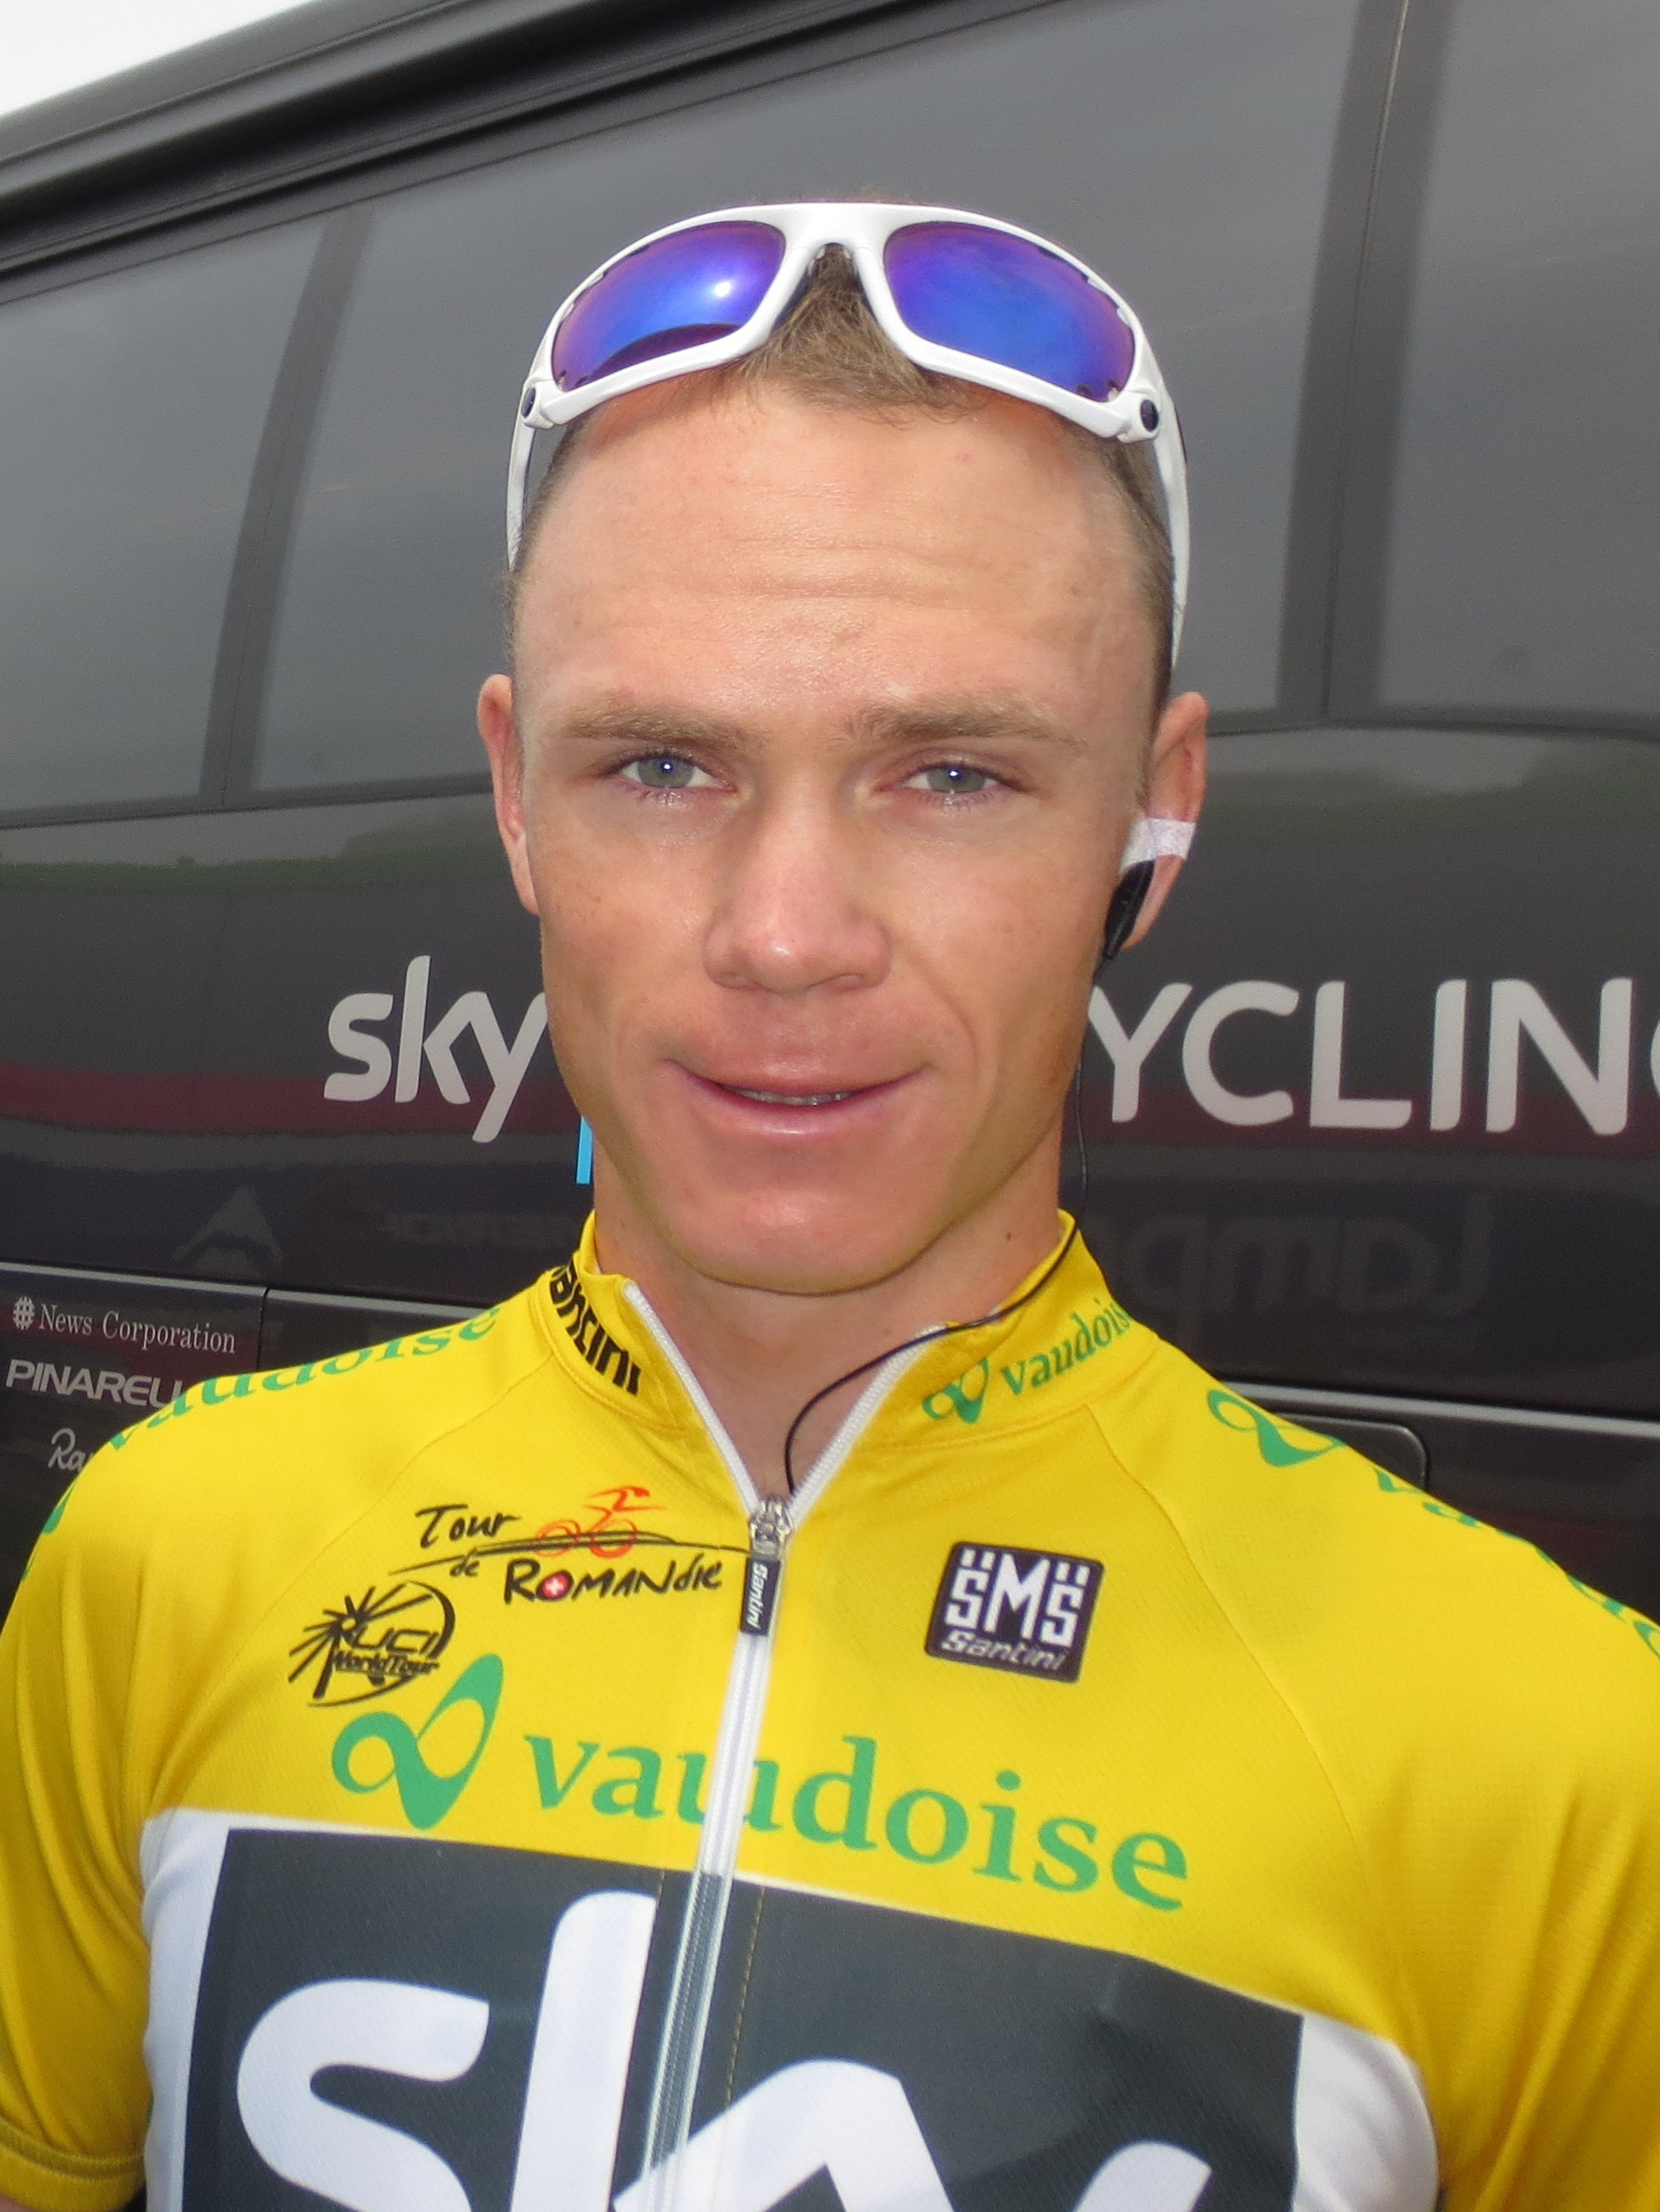 Chris_Froome_Tour_de_Romandie_2013